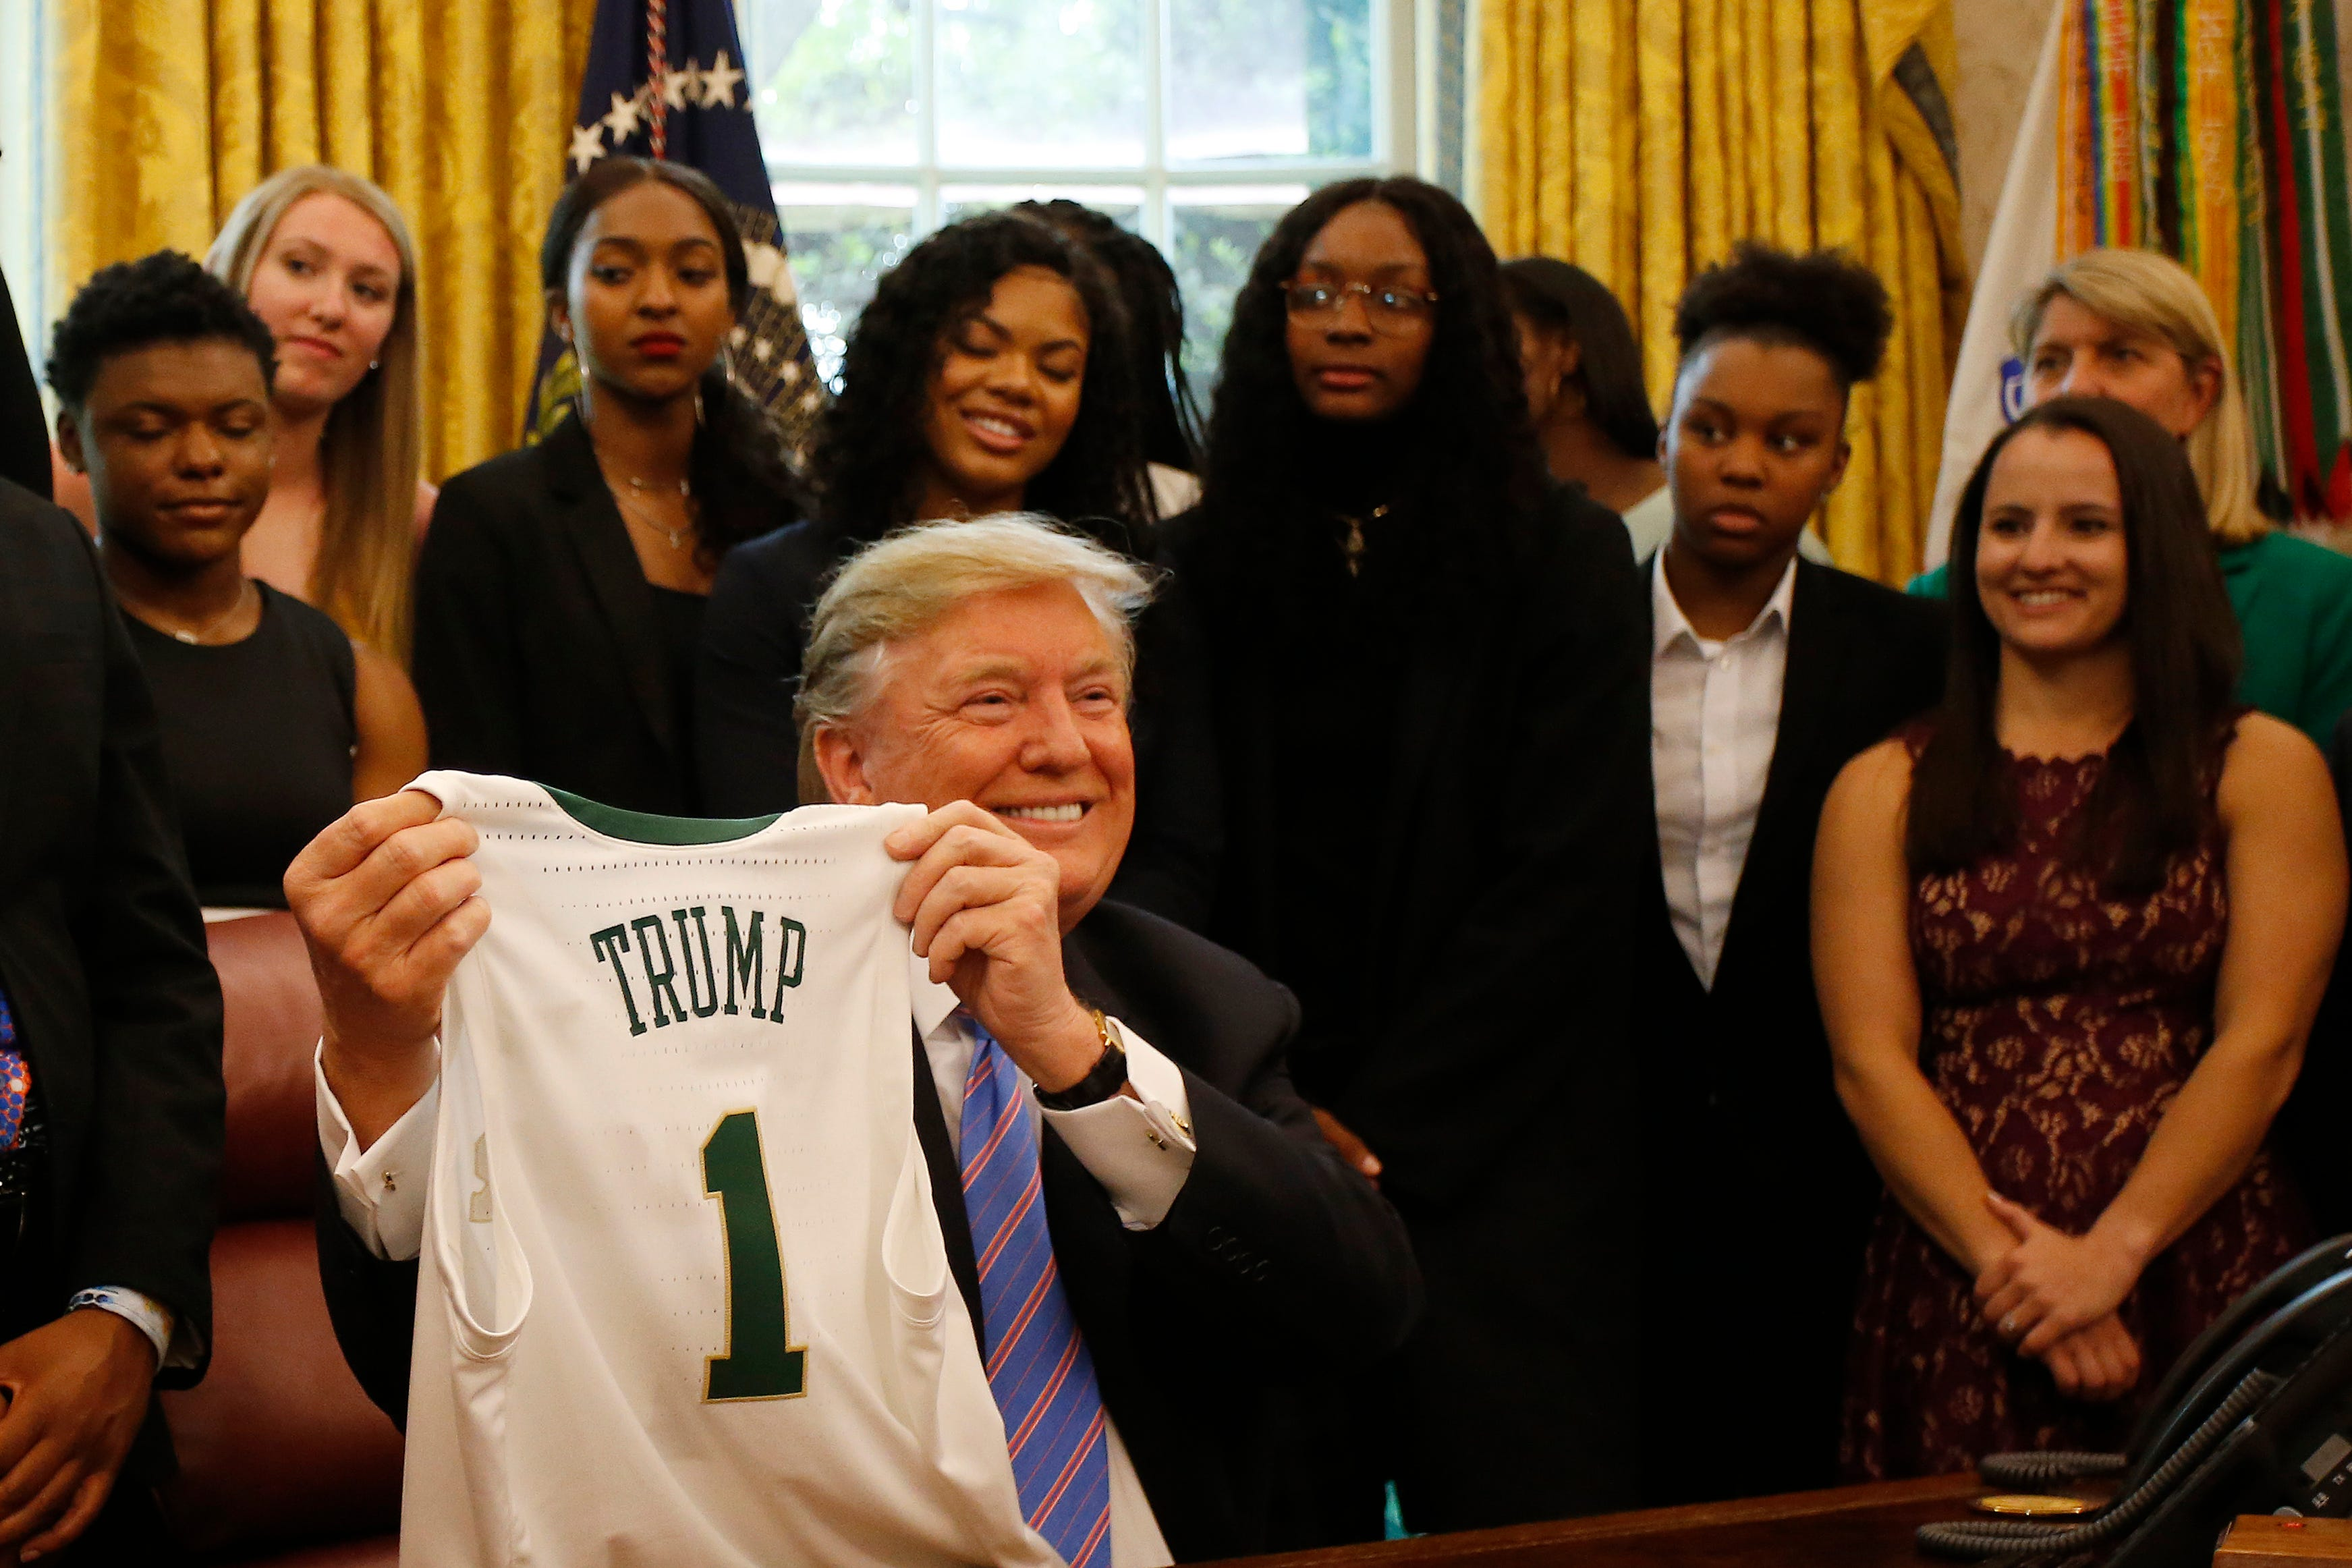 Baylor women's basketball team gets fast-food feast at White House meeting with Trump